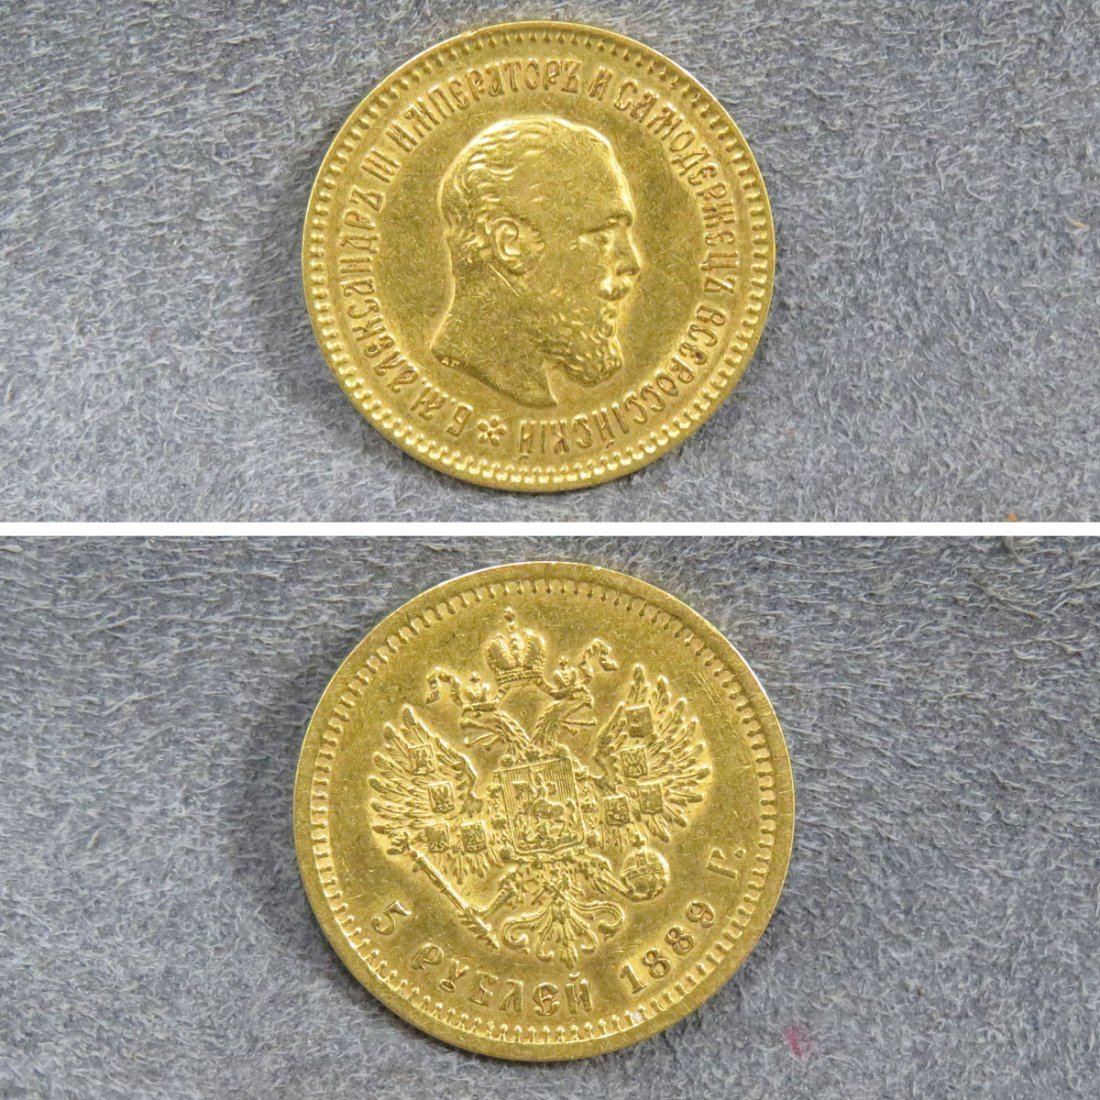 1889 IMPERIAL RUSSIAN 5 RUBLES GOLD COIN